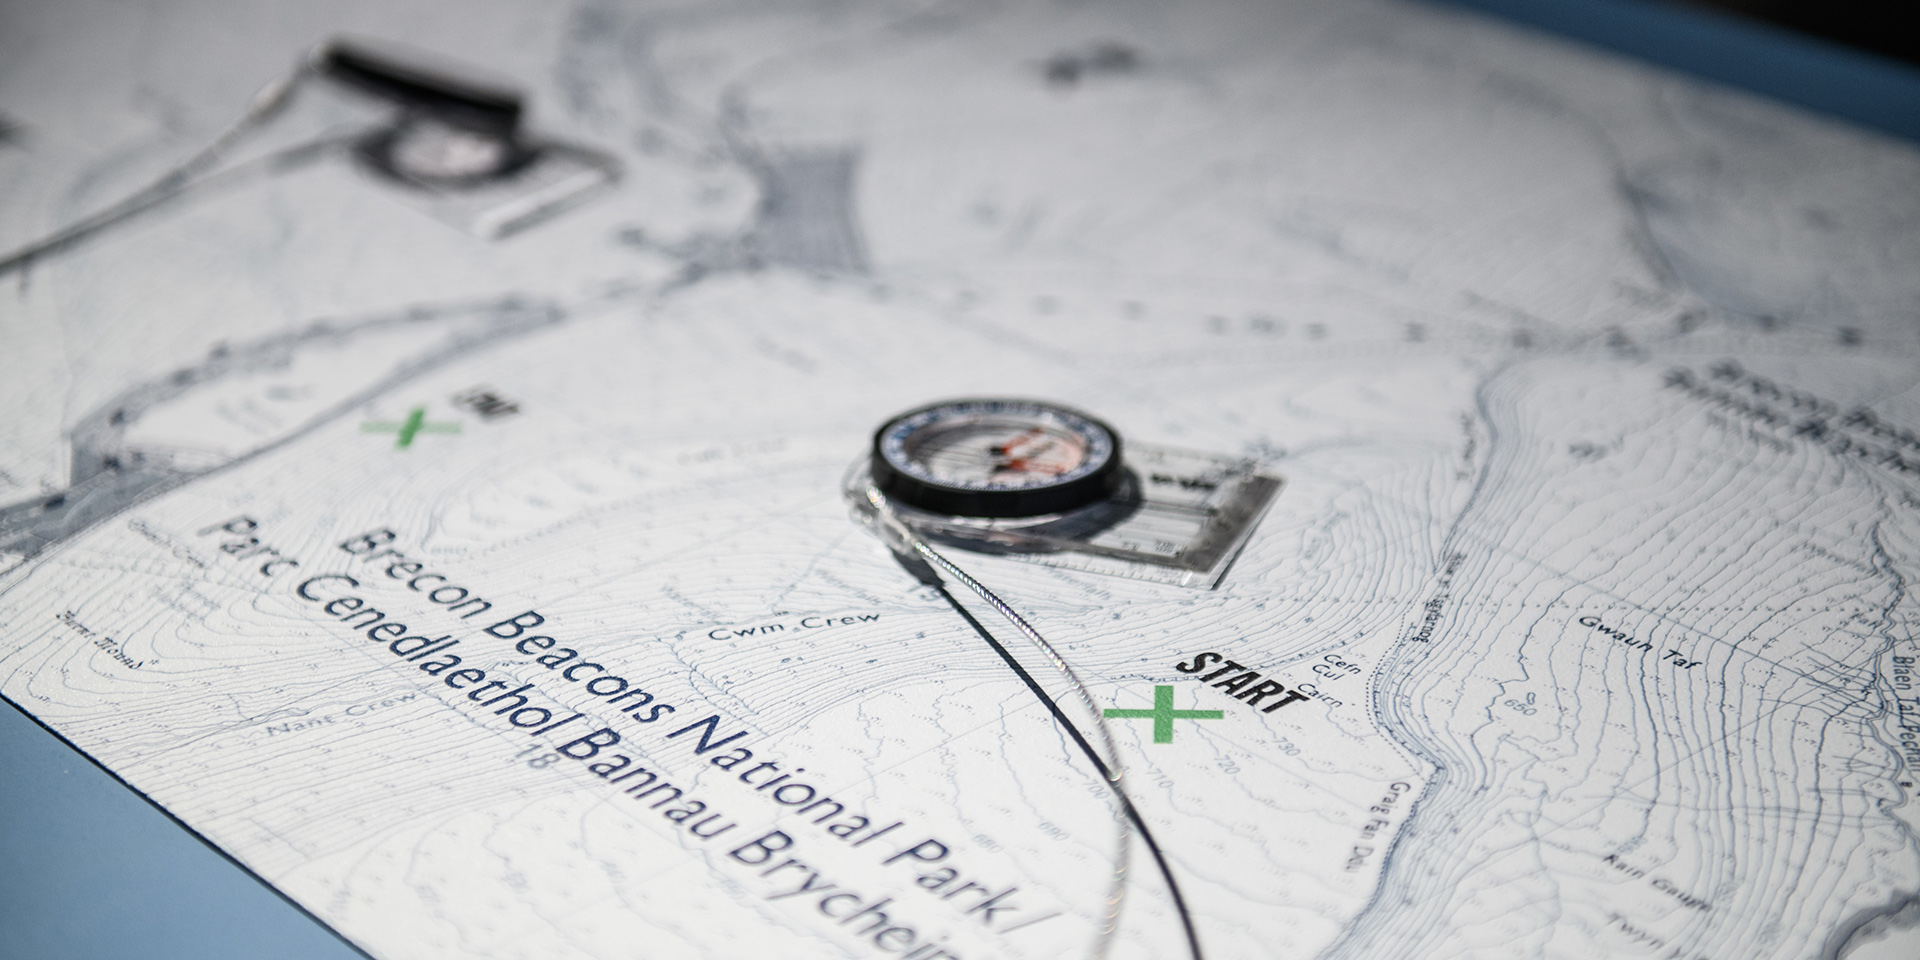 Navigation interactive in special forces exhibition